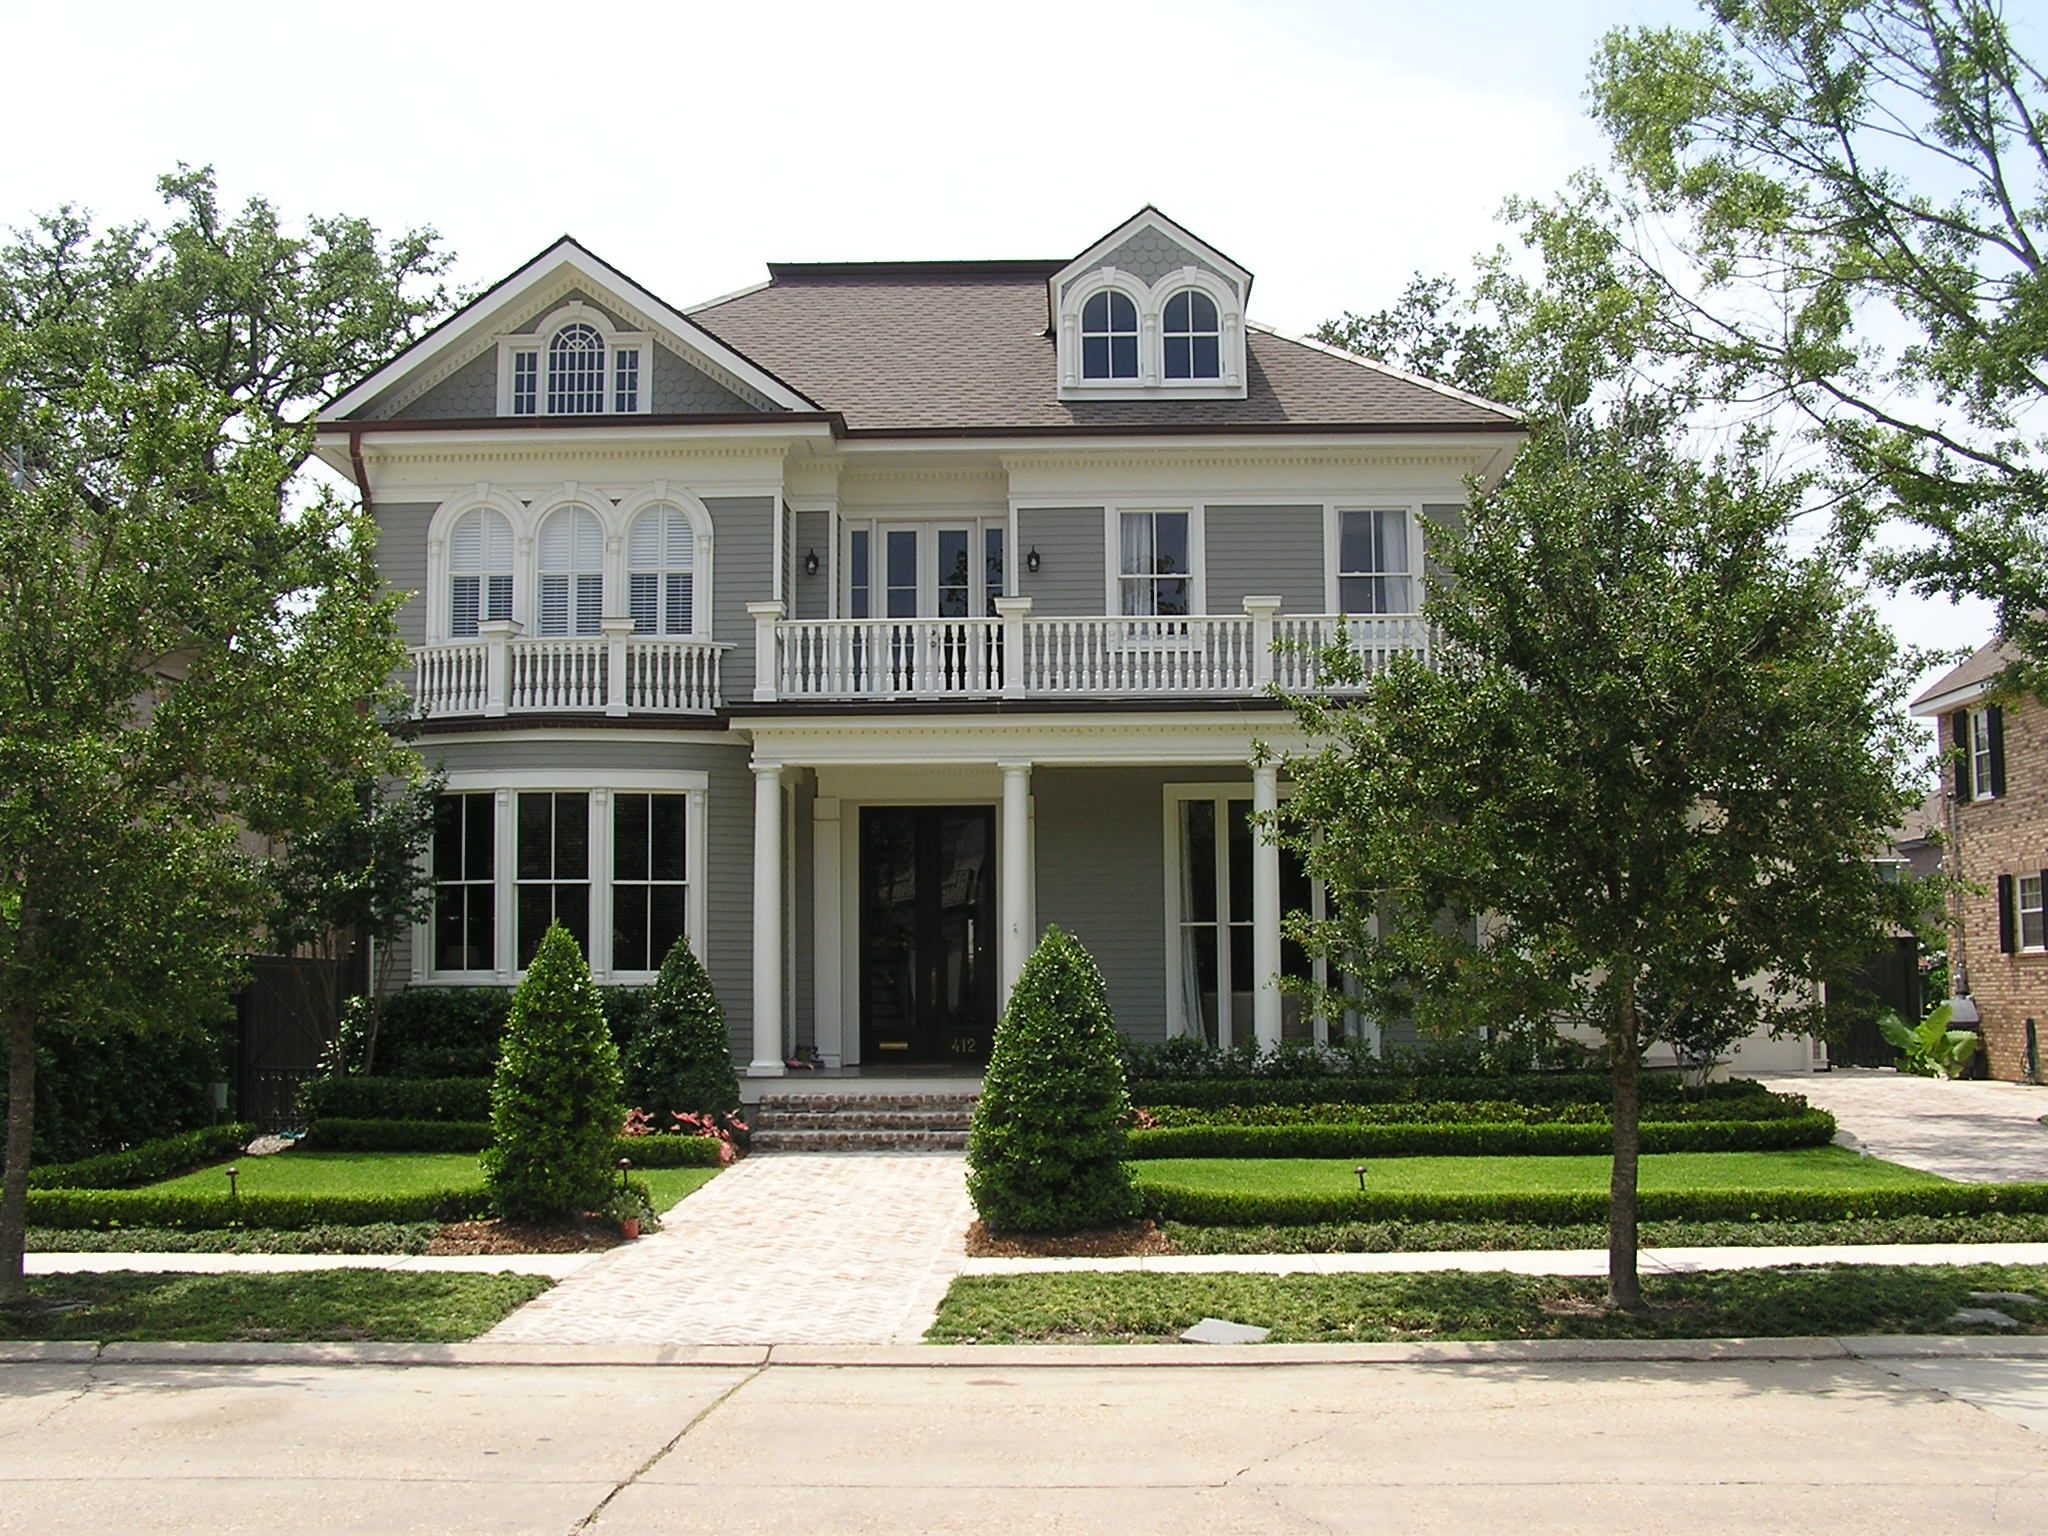 Stunning 11 images traditional southern homes building for Southern dream homes